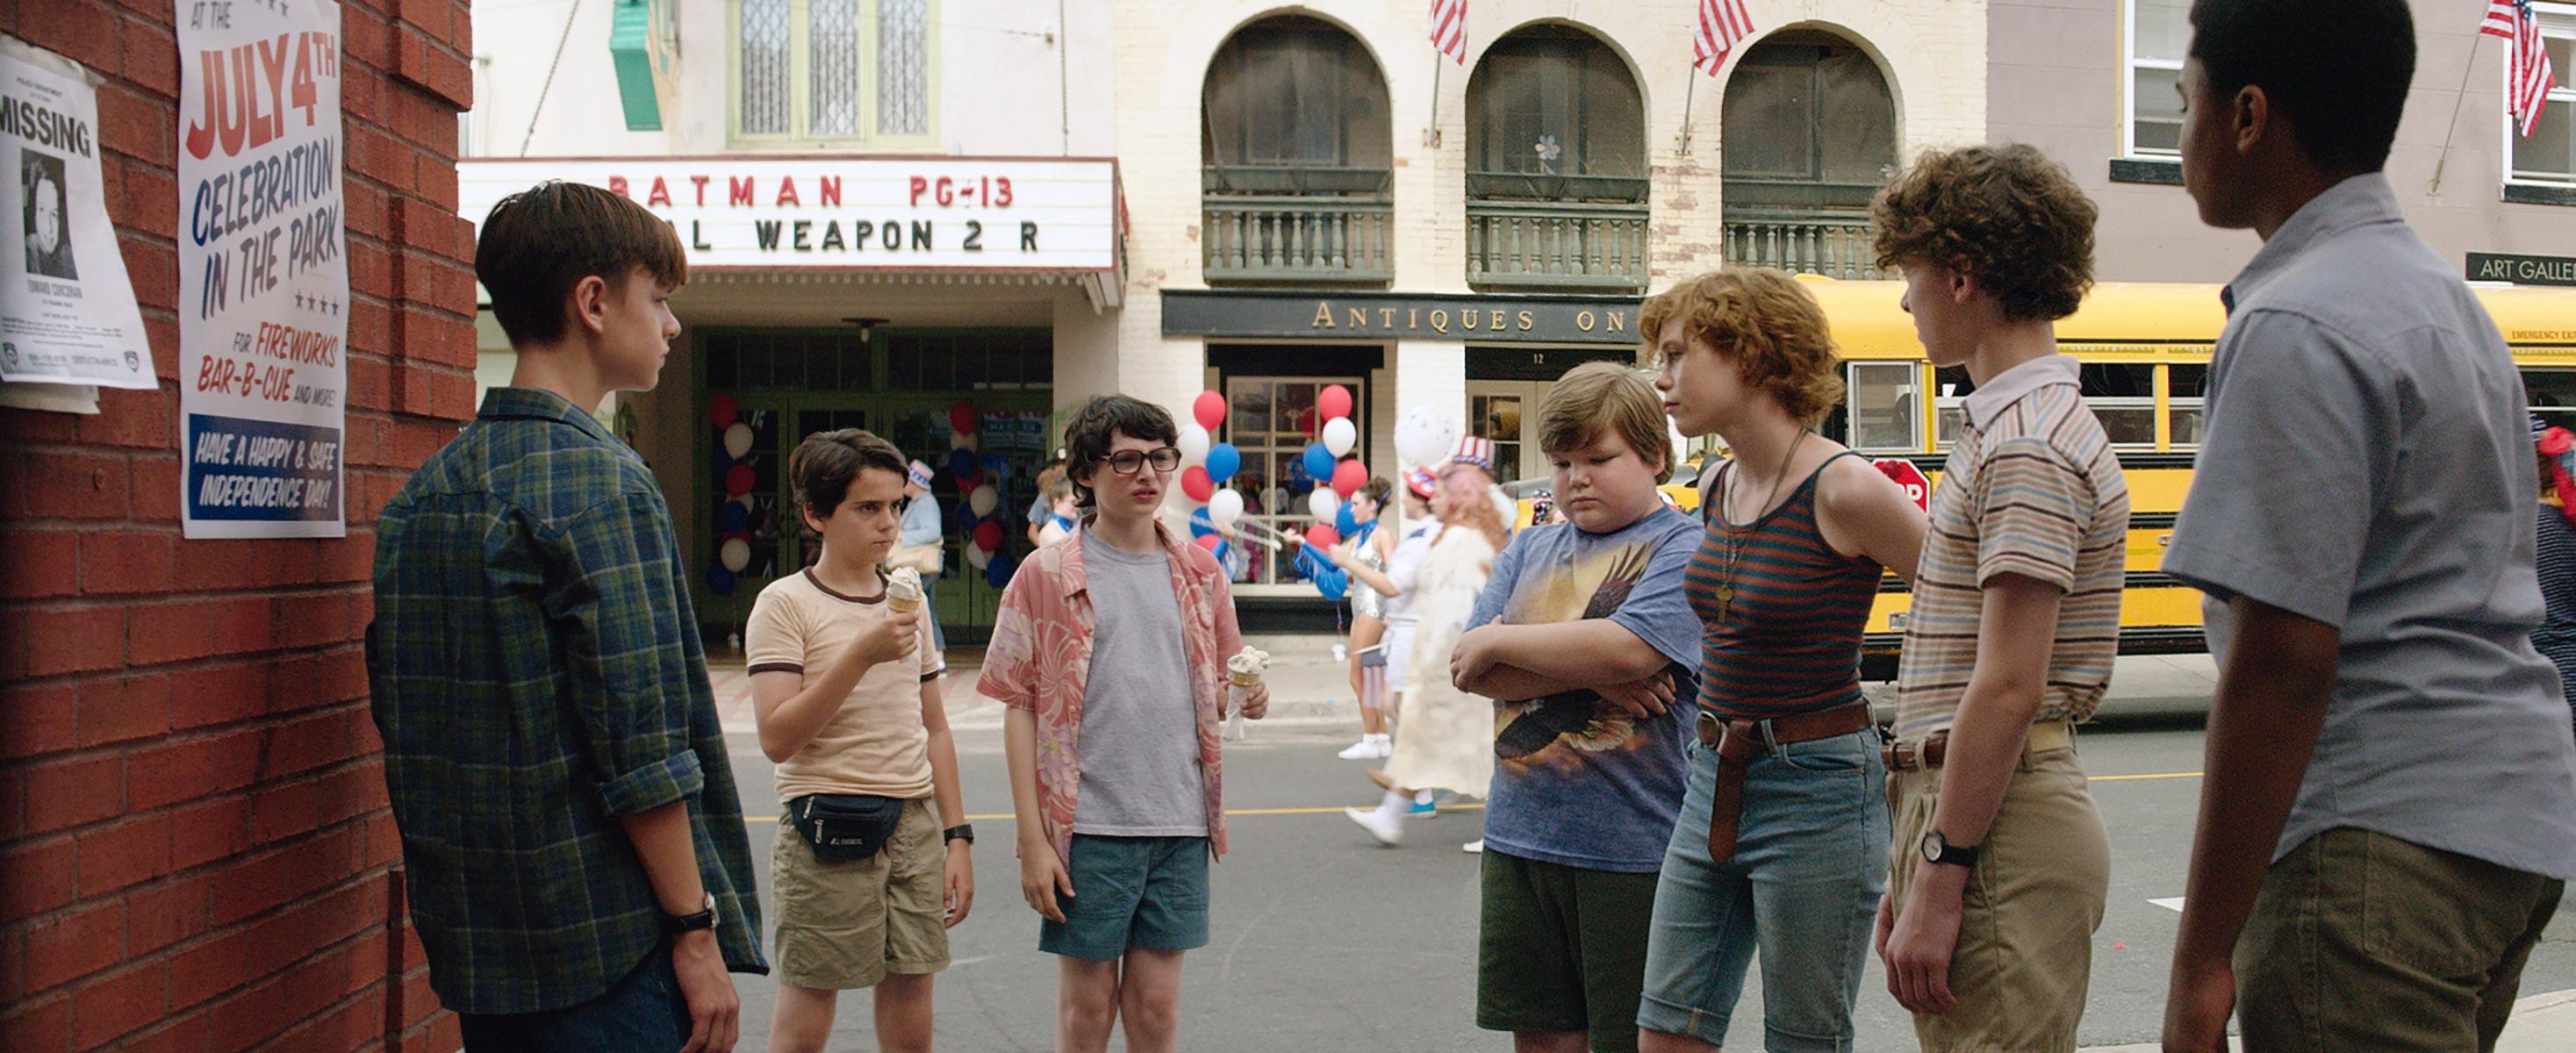 "(L-r) JAEDEN LIEBERHER as Bill Denbrough, JACK DYLAN GRAZER as Eddie Kaspbrak, FINN WOLFHARD as Richie Tozier, JEREMY RAY TAYLOR as Ben Hanscom, SOPHIA LILLIS as Beverly Marsh, WYATT OLEFF as Stanley Uris and CHOSEN JACOBS as Mike Hanlon in New Line Cinema's horror thriller ""IT,"" a Warner Bros. Pictures release. Photo Credit: Brooke Palmer"